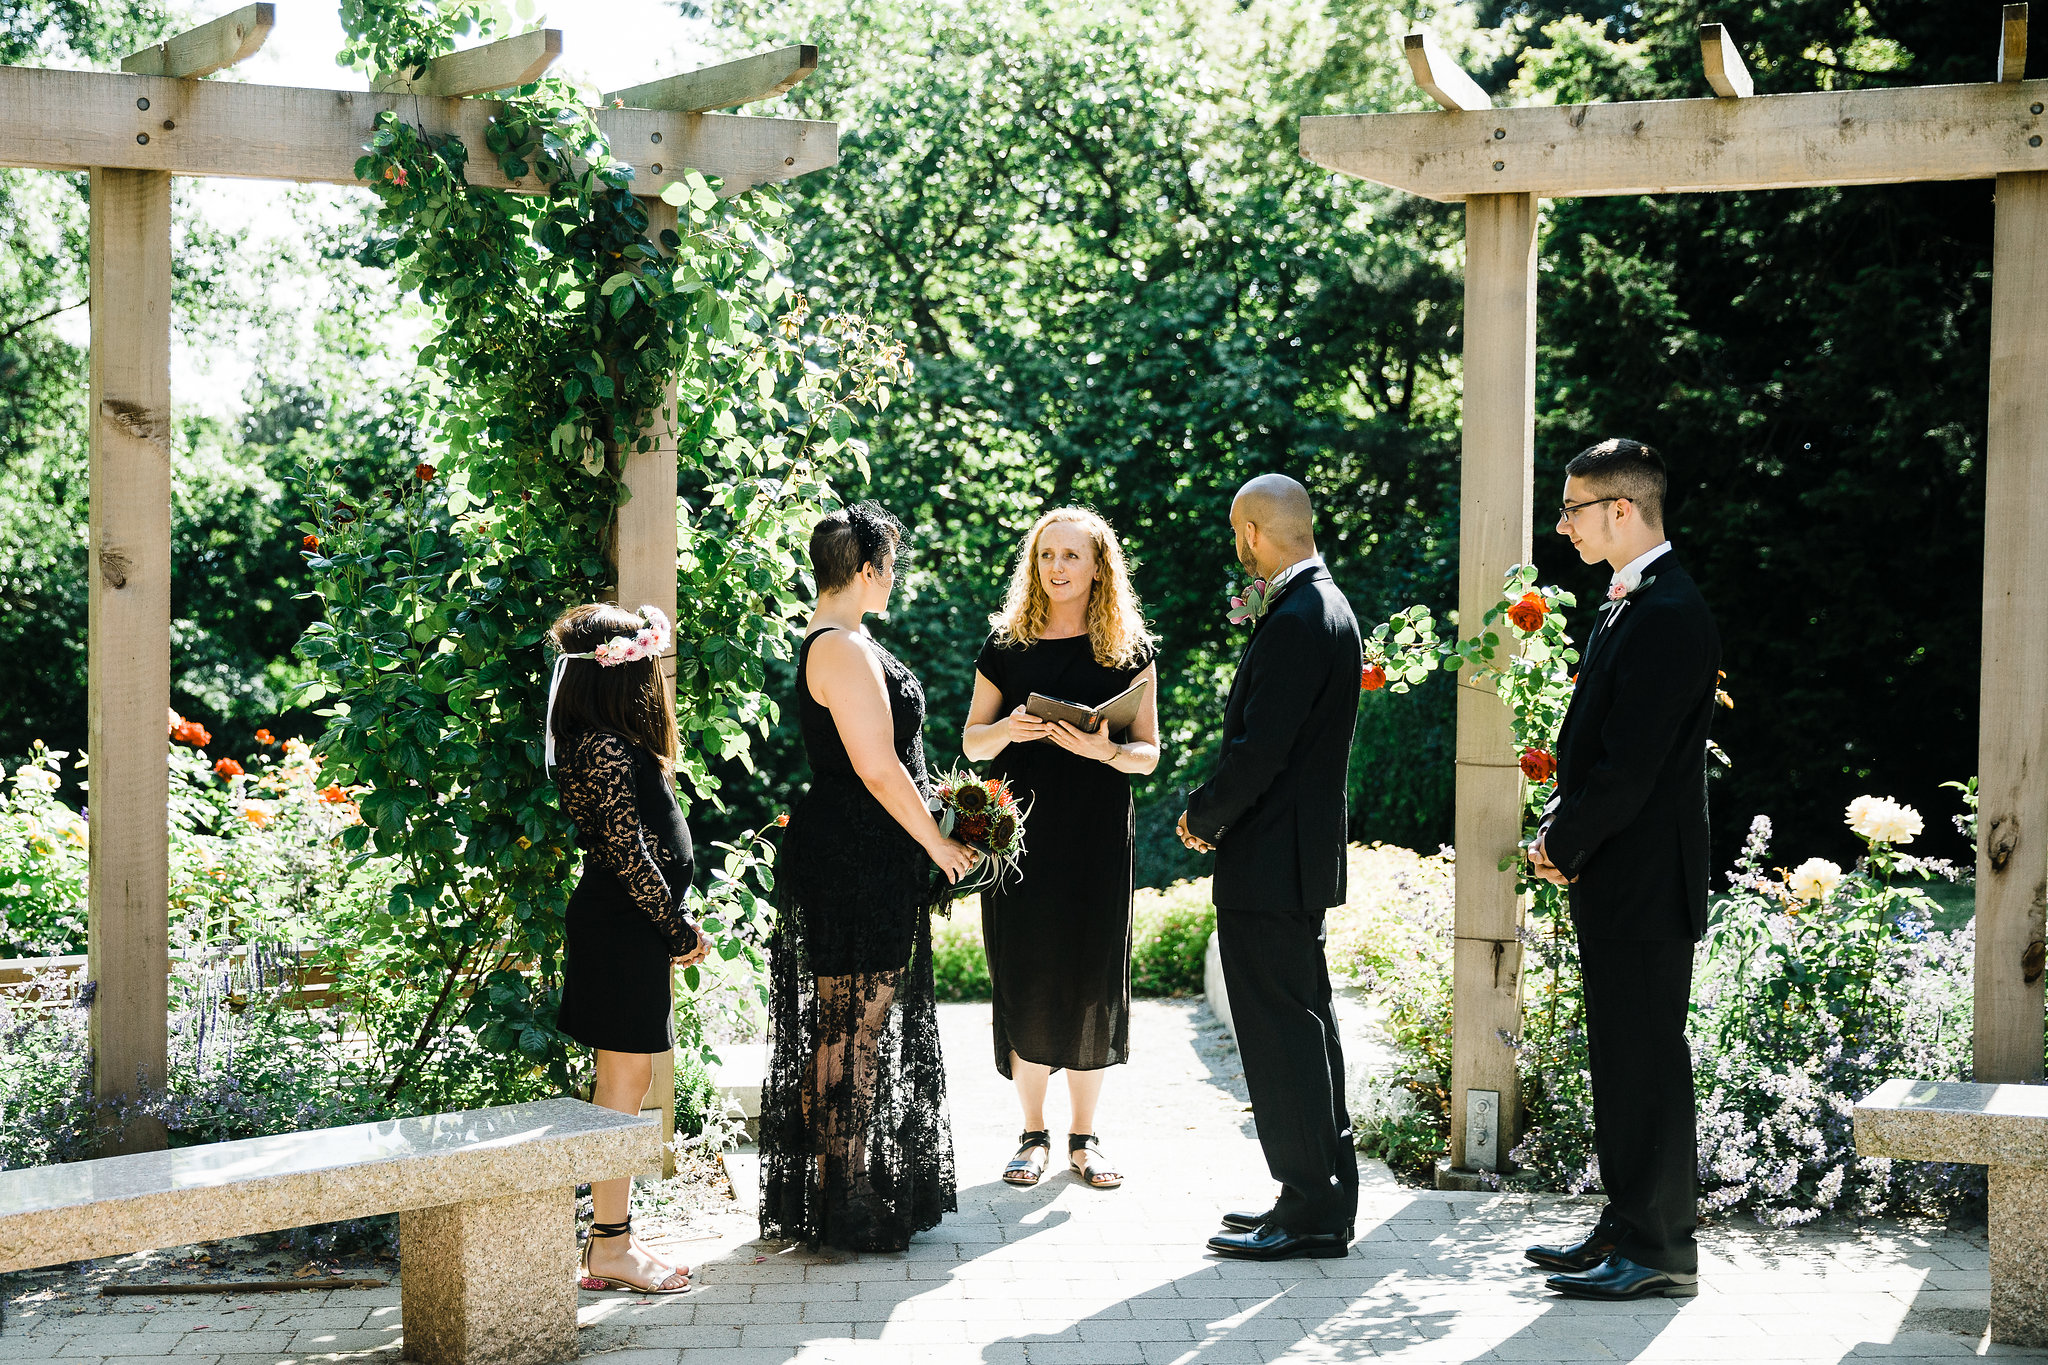 Vancouver elopement at Carisbrooke Park with Young Hip & Married officiants and marriage commissioners